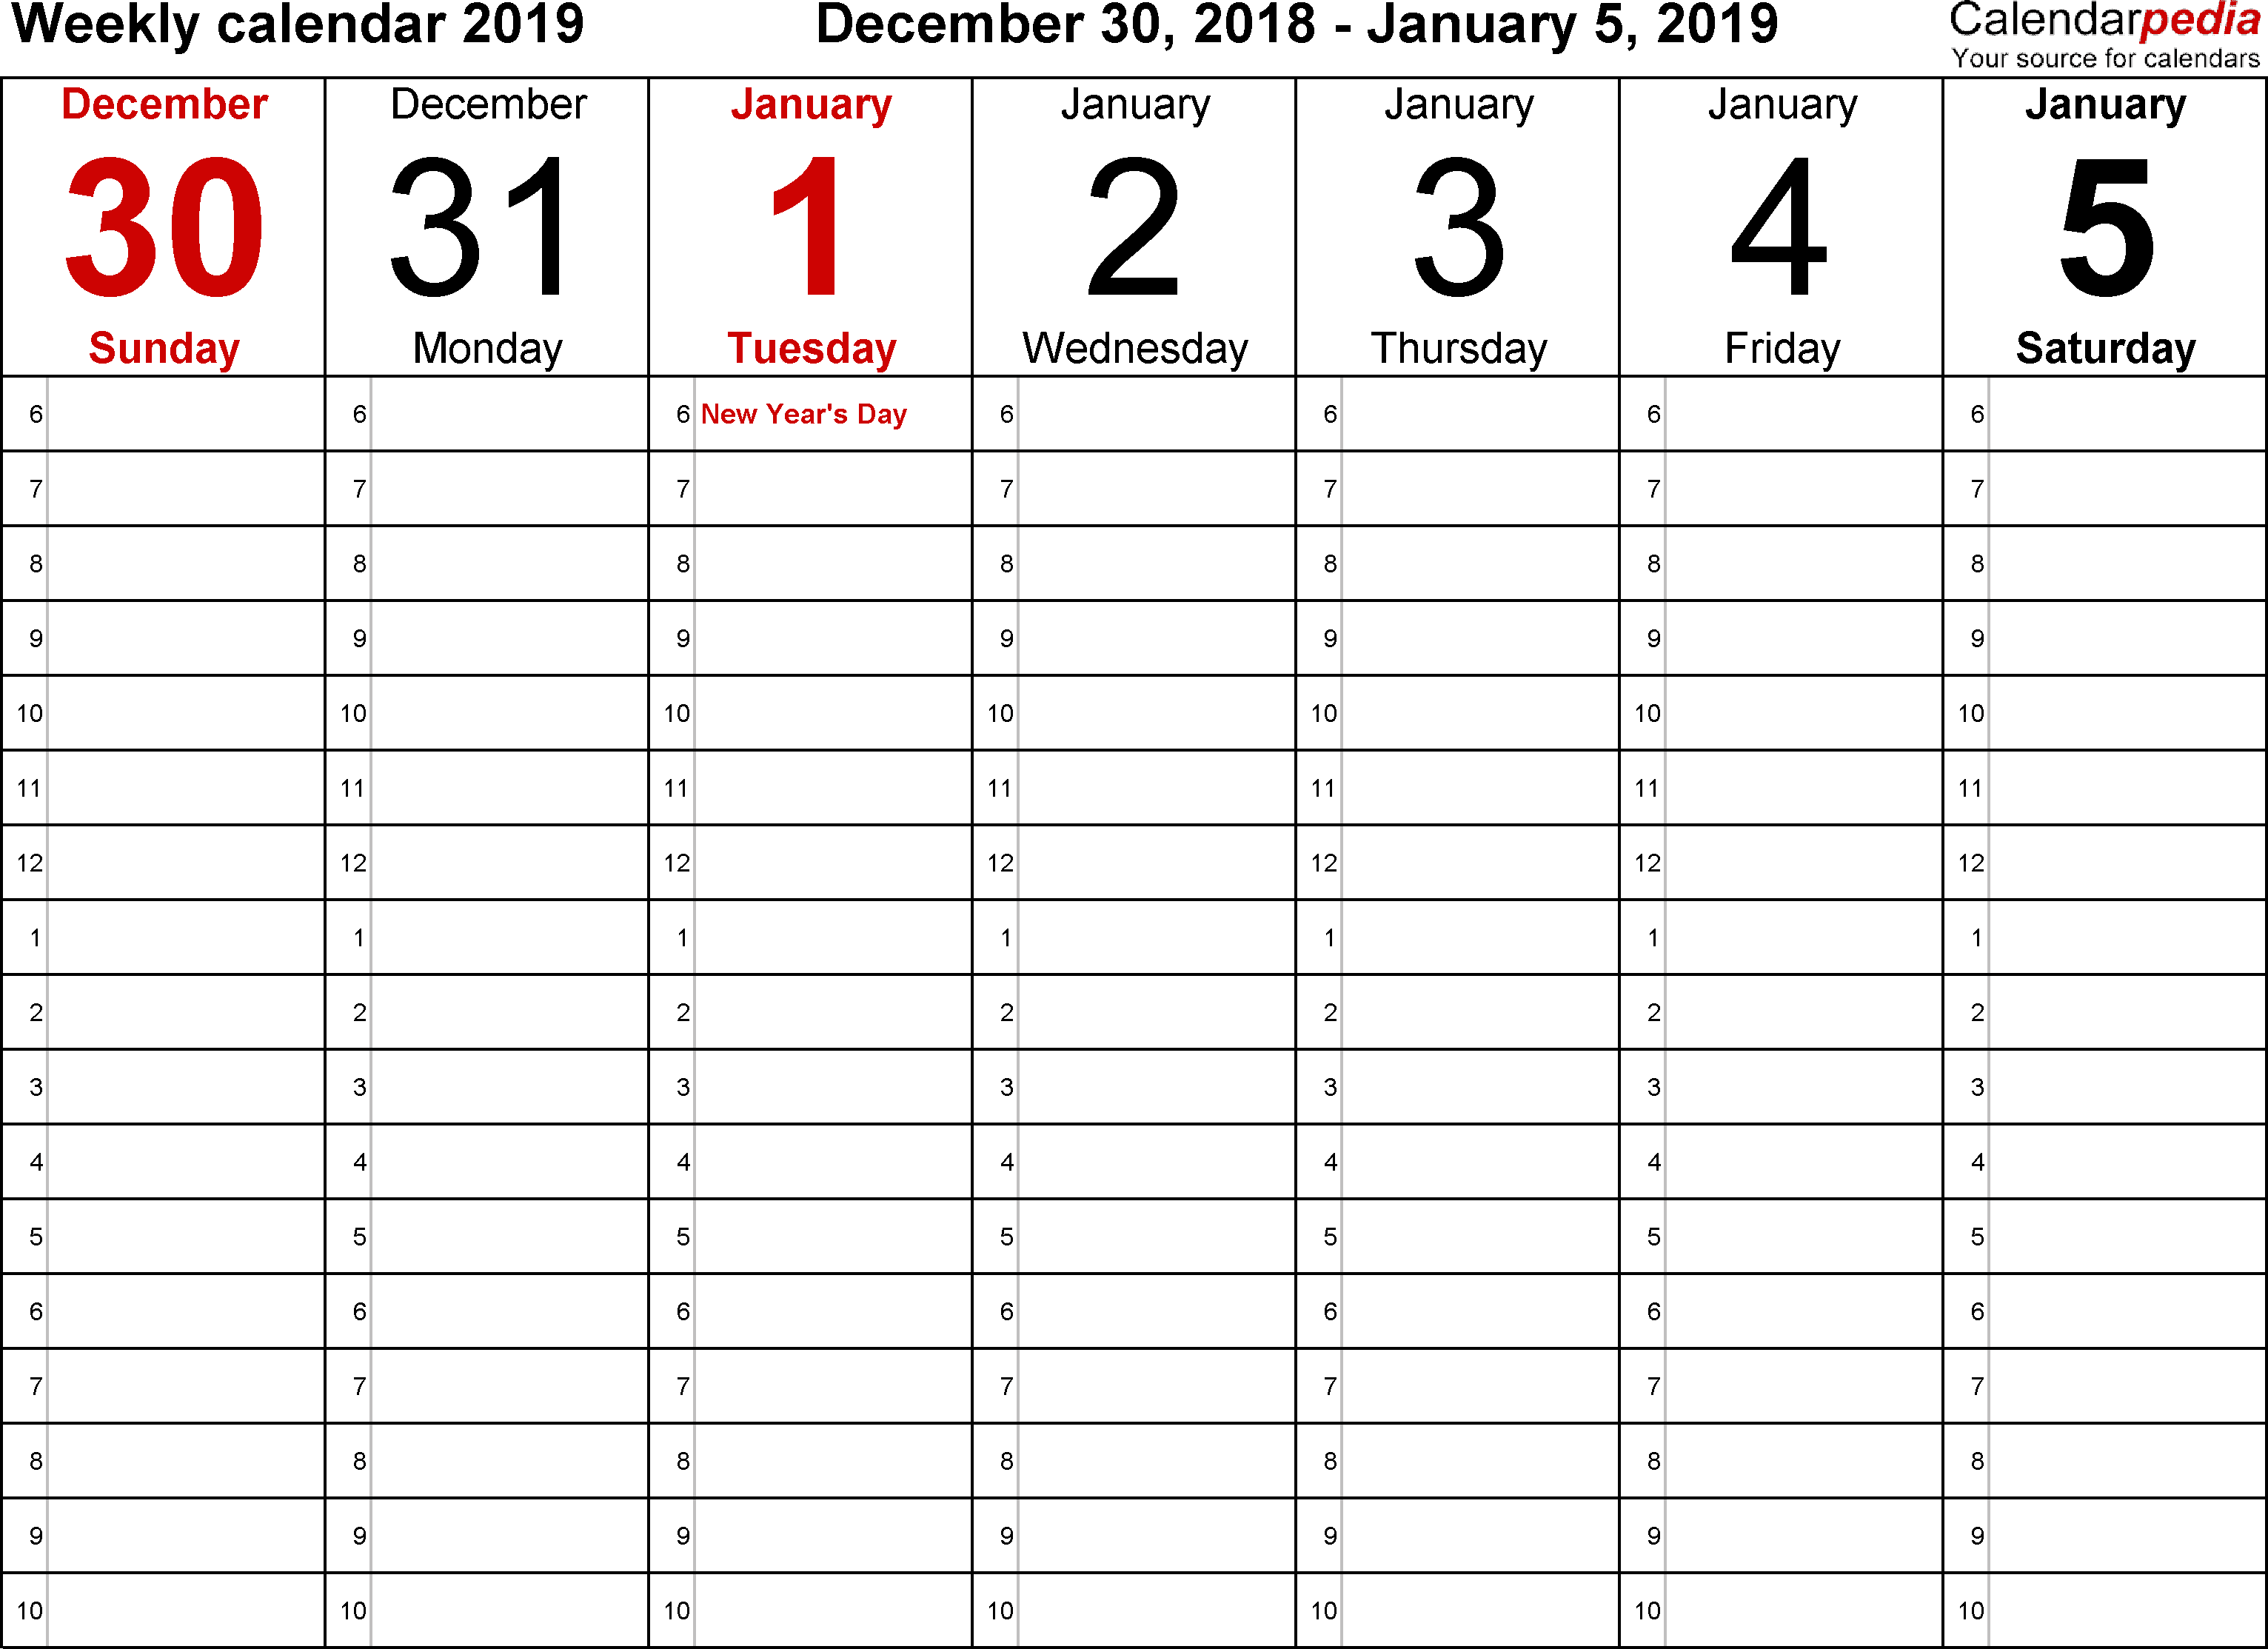 Weekly calendar 2019: template for Excel version 1, landscape, 53 pages, time management layout (18 hours per day, 6am to 11.59pm)